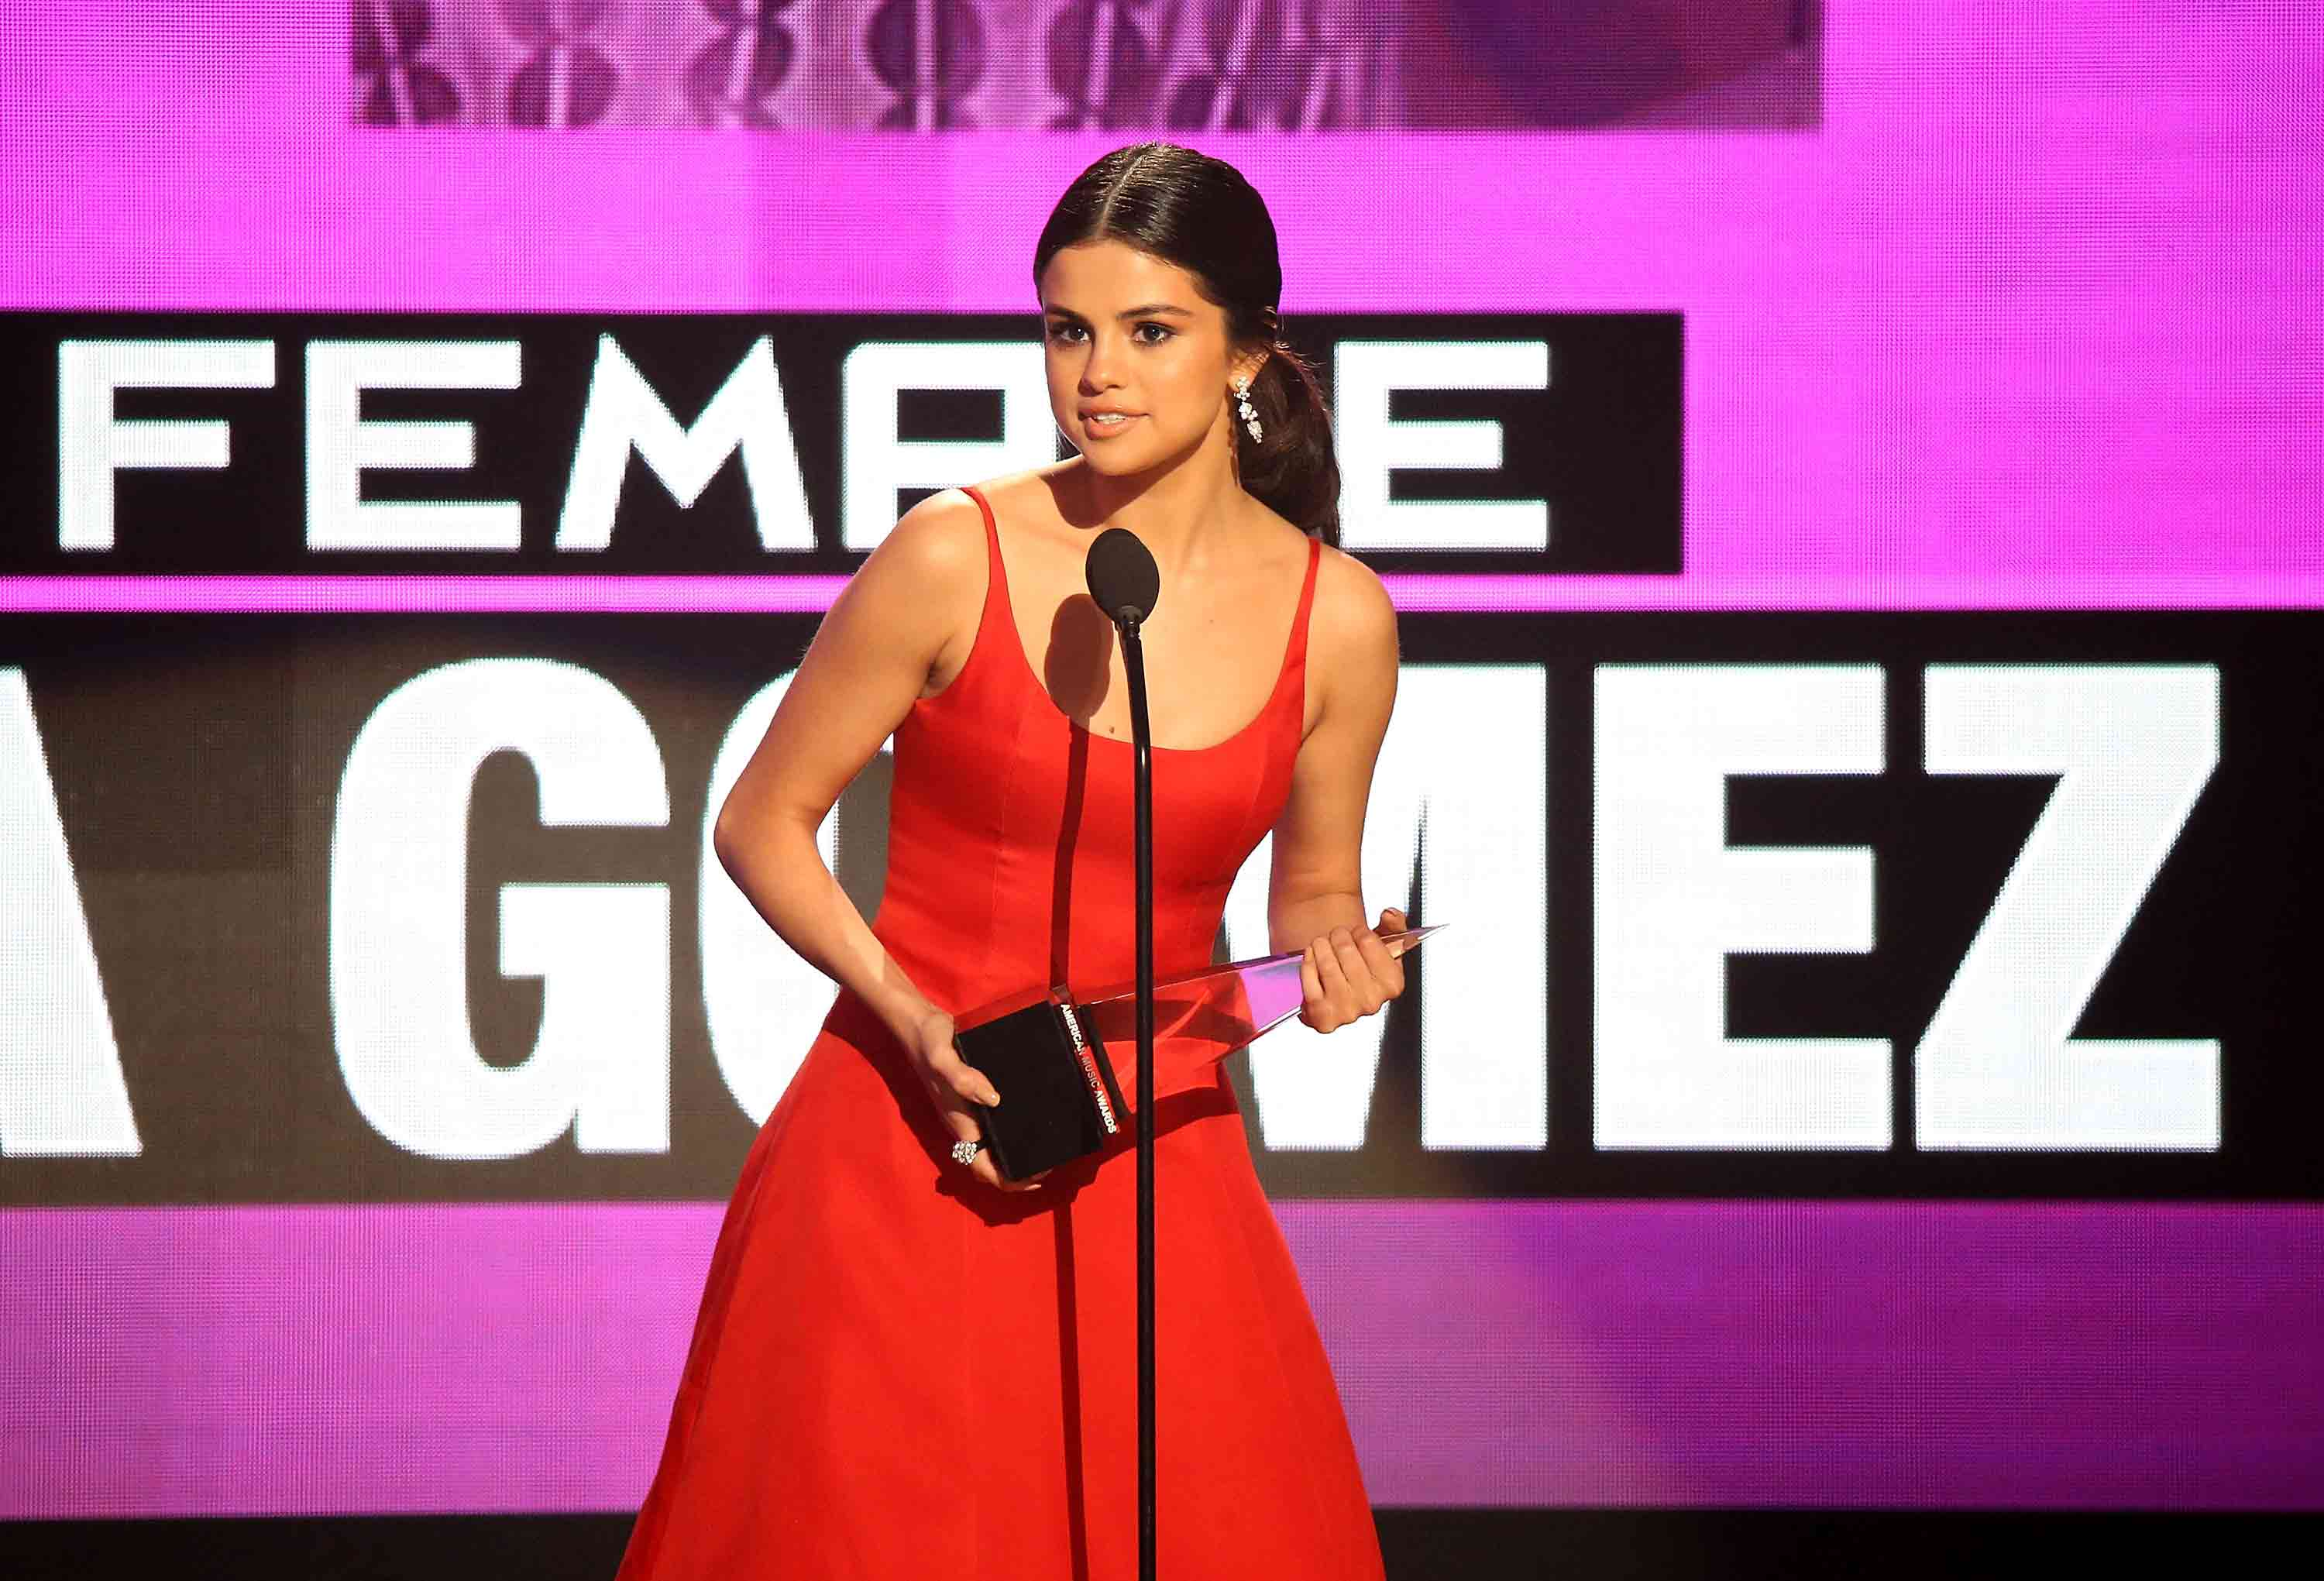 This is what Selena Gomez looked like at her very first AMA appearance 7 years ago!